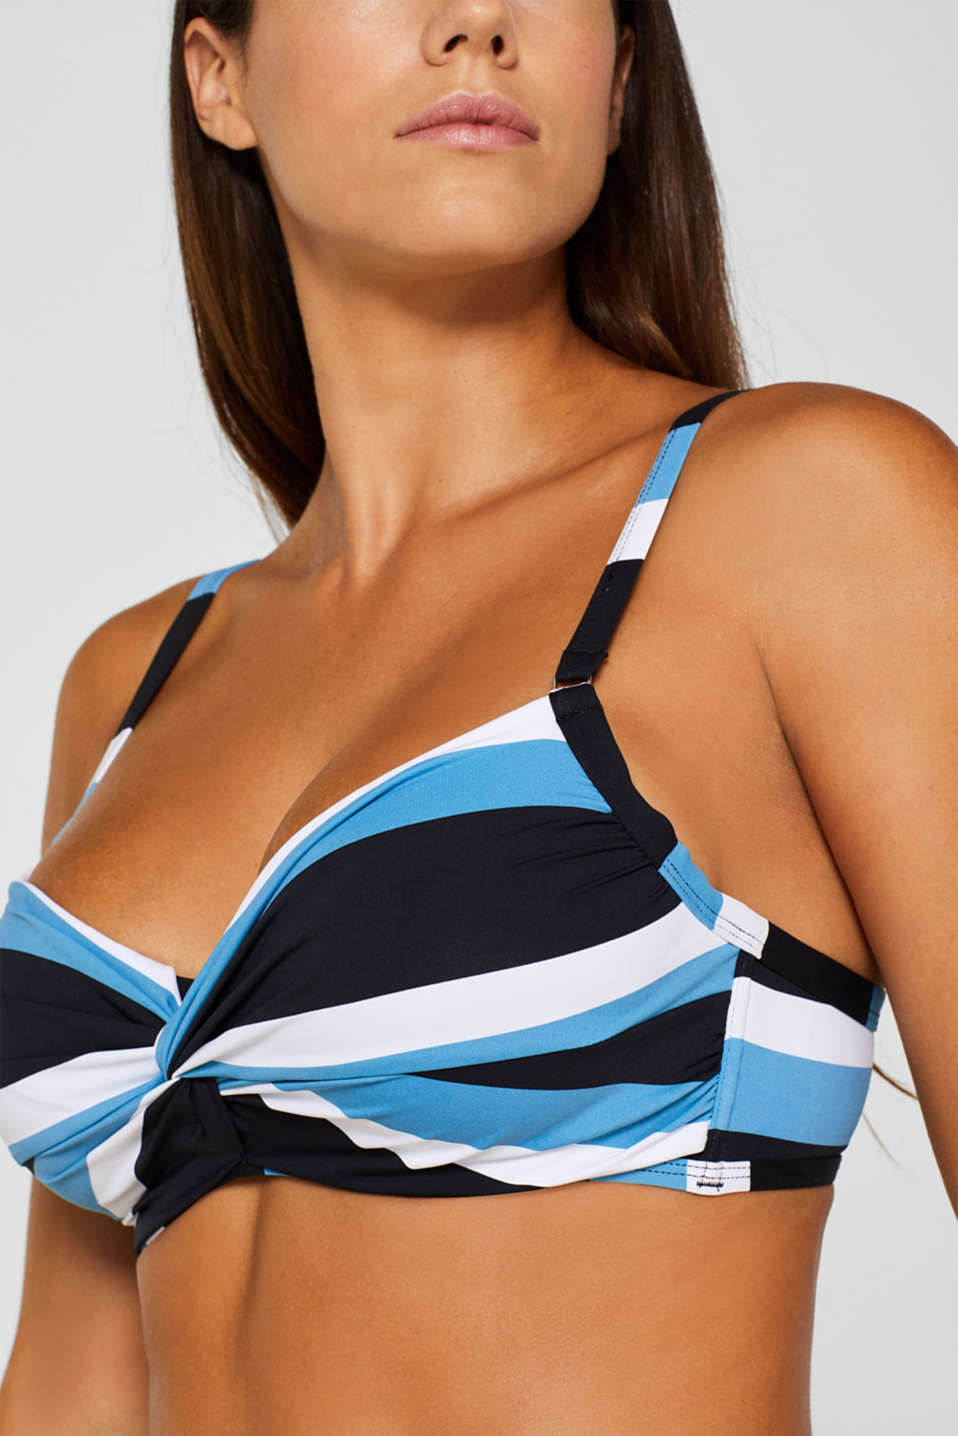 Top with concealed underwiring for large cup sizes, BLACK, detail image number 2